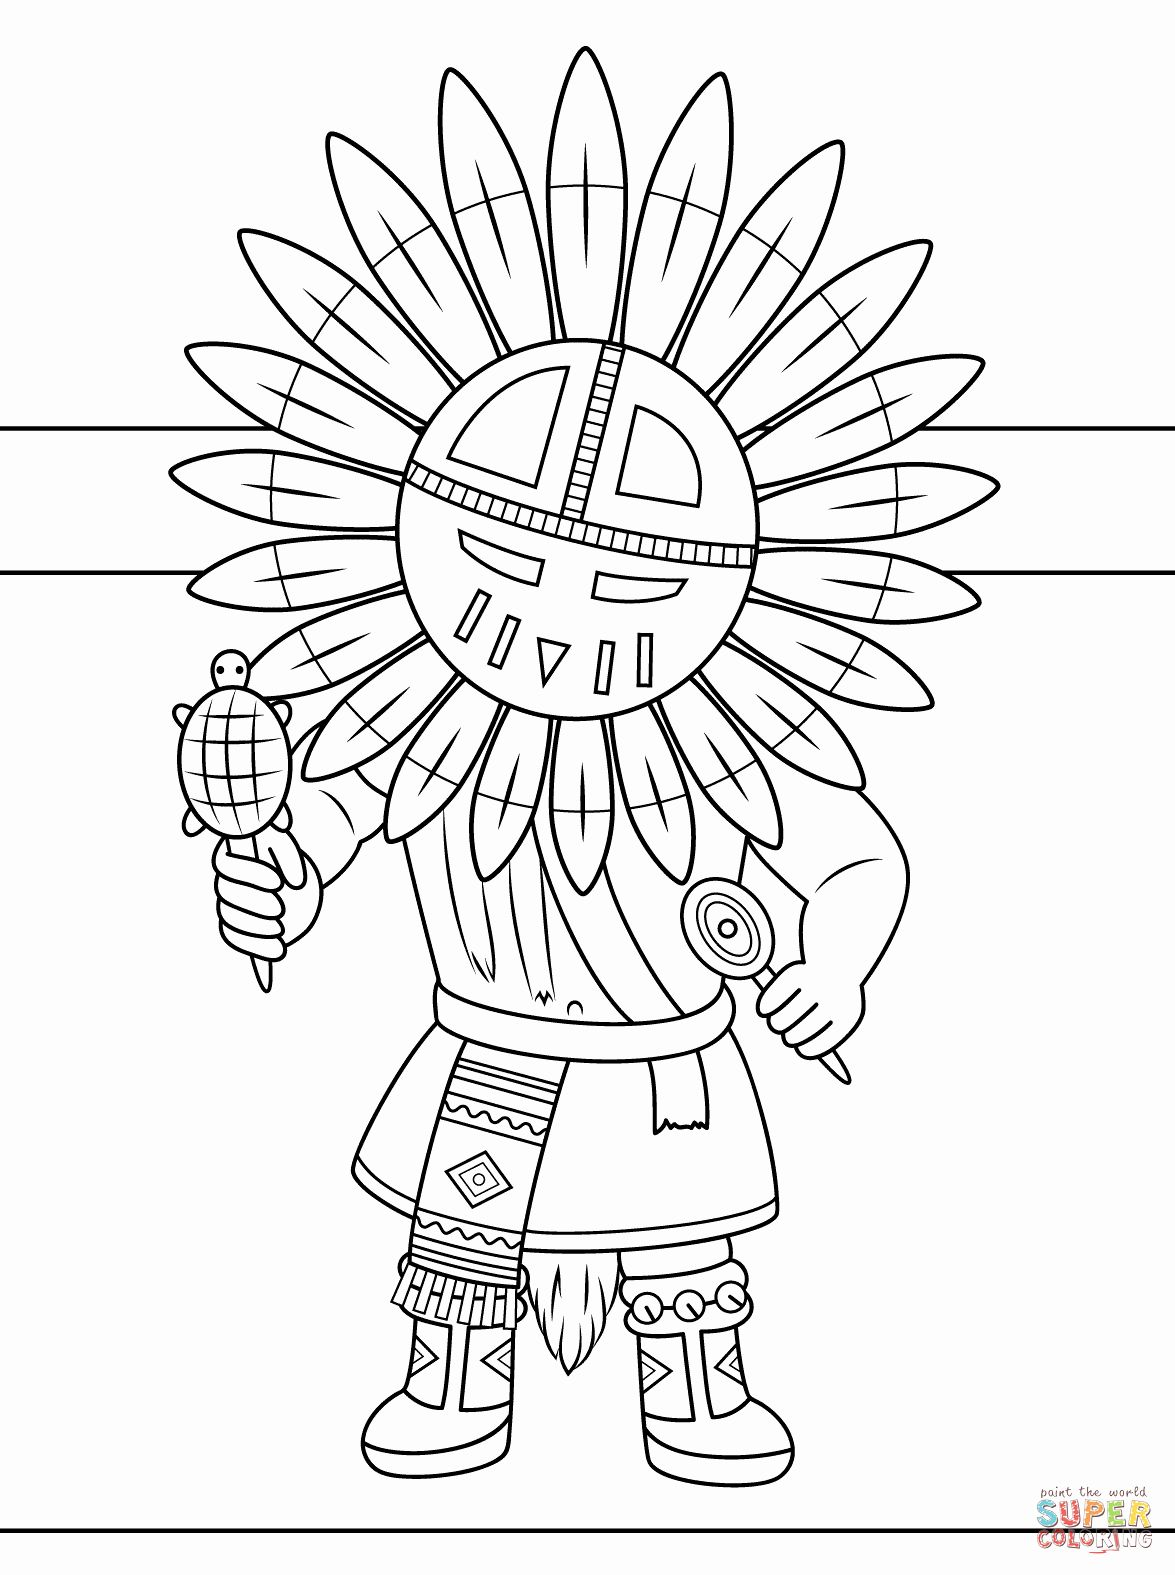 native art coloring pages totempole yakari color page cartoon characters coloring native art pages coloring